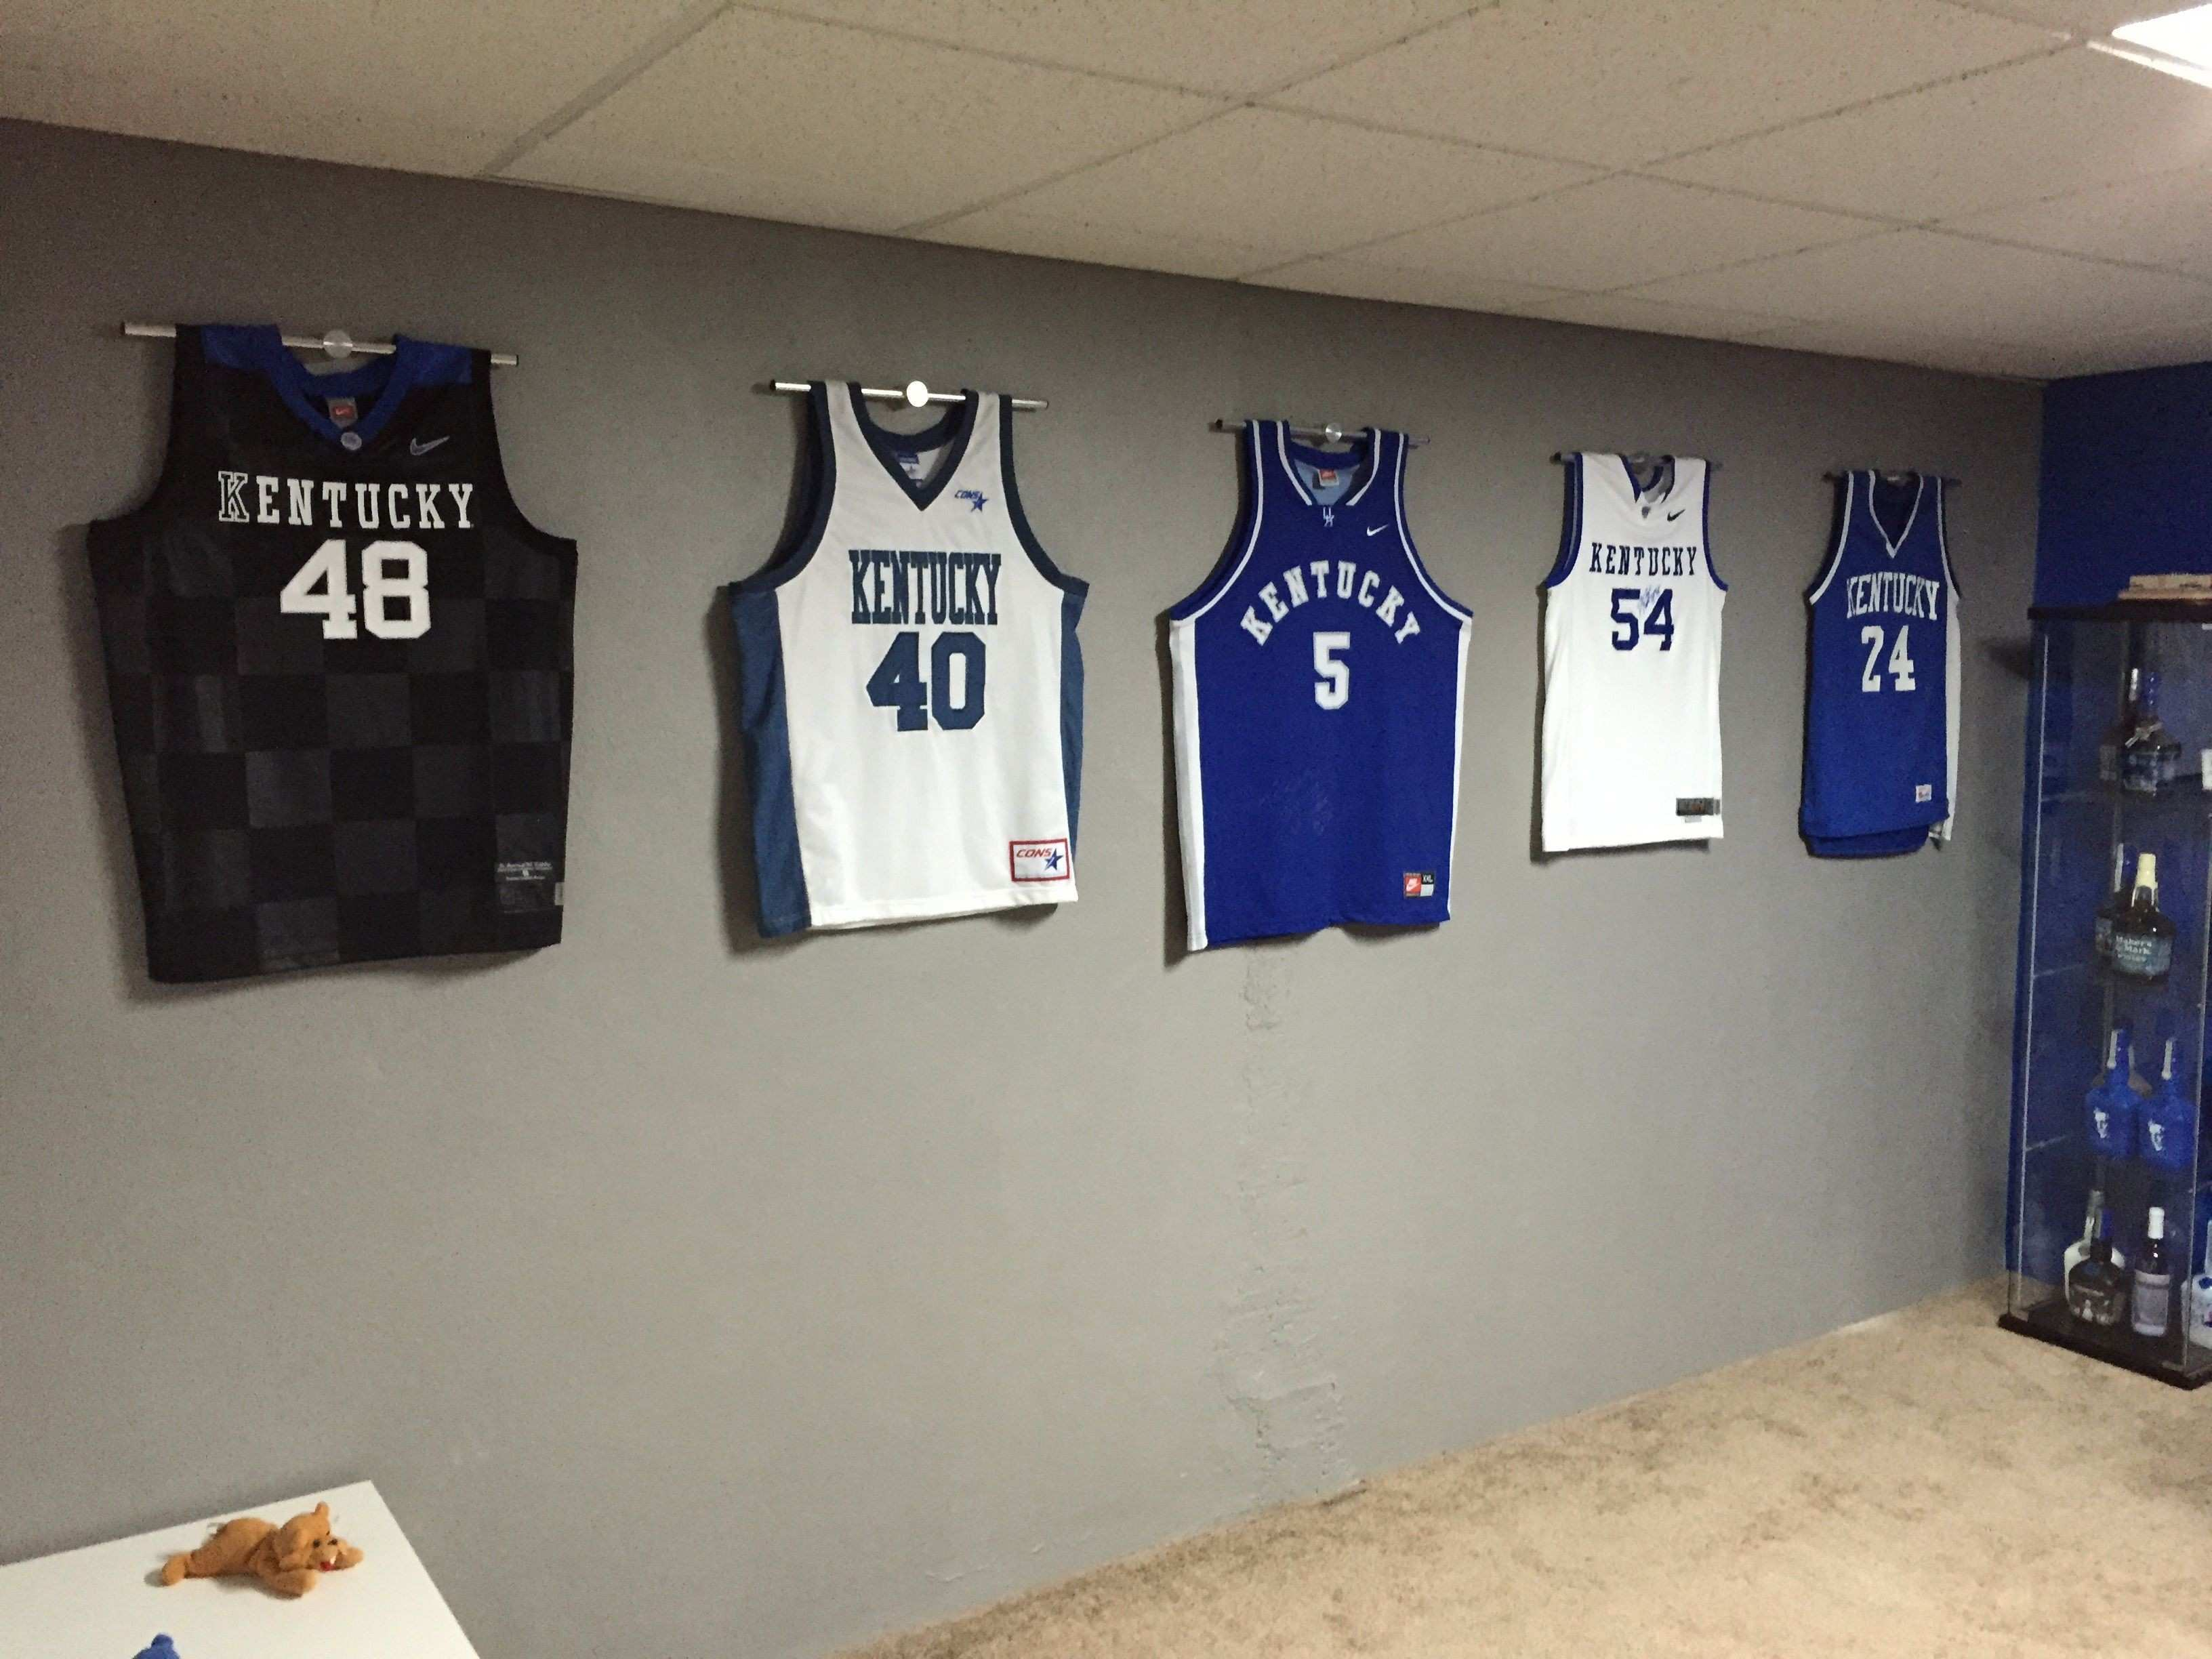 Ultra Mount Jersey display hanger the affordable alternative to